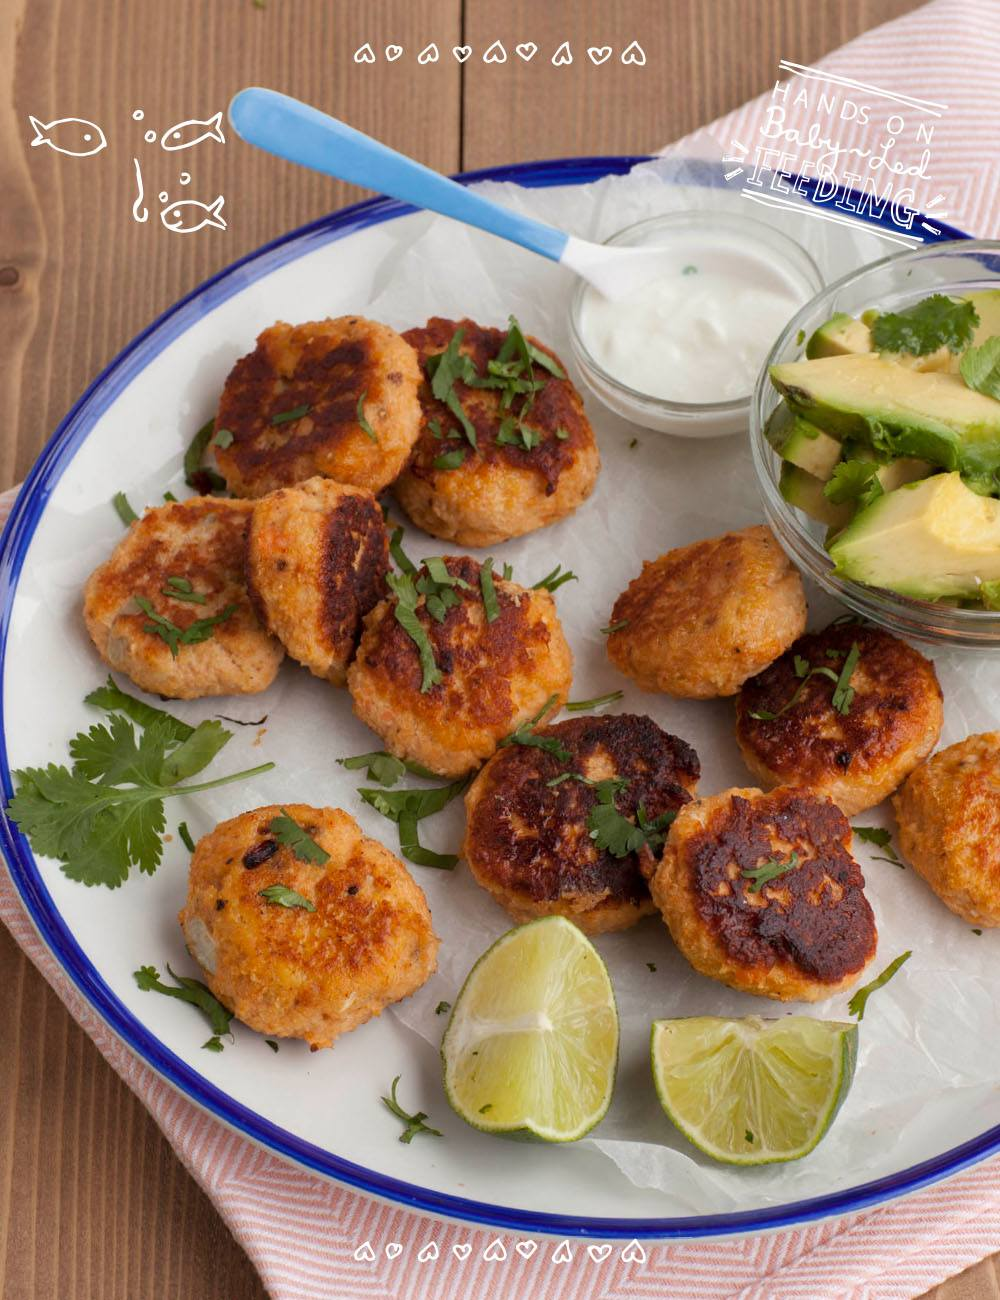 Baby-Led-Feeding-Salmon-Fishcakes-with-Avocado-Recipe-Image